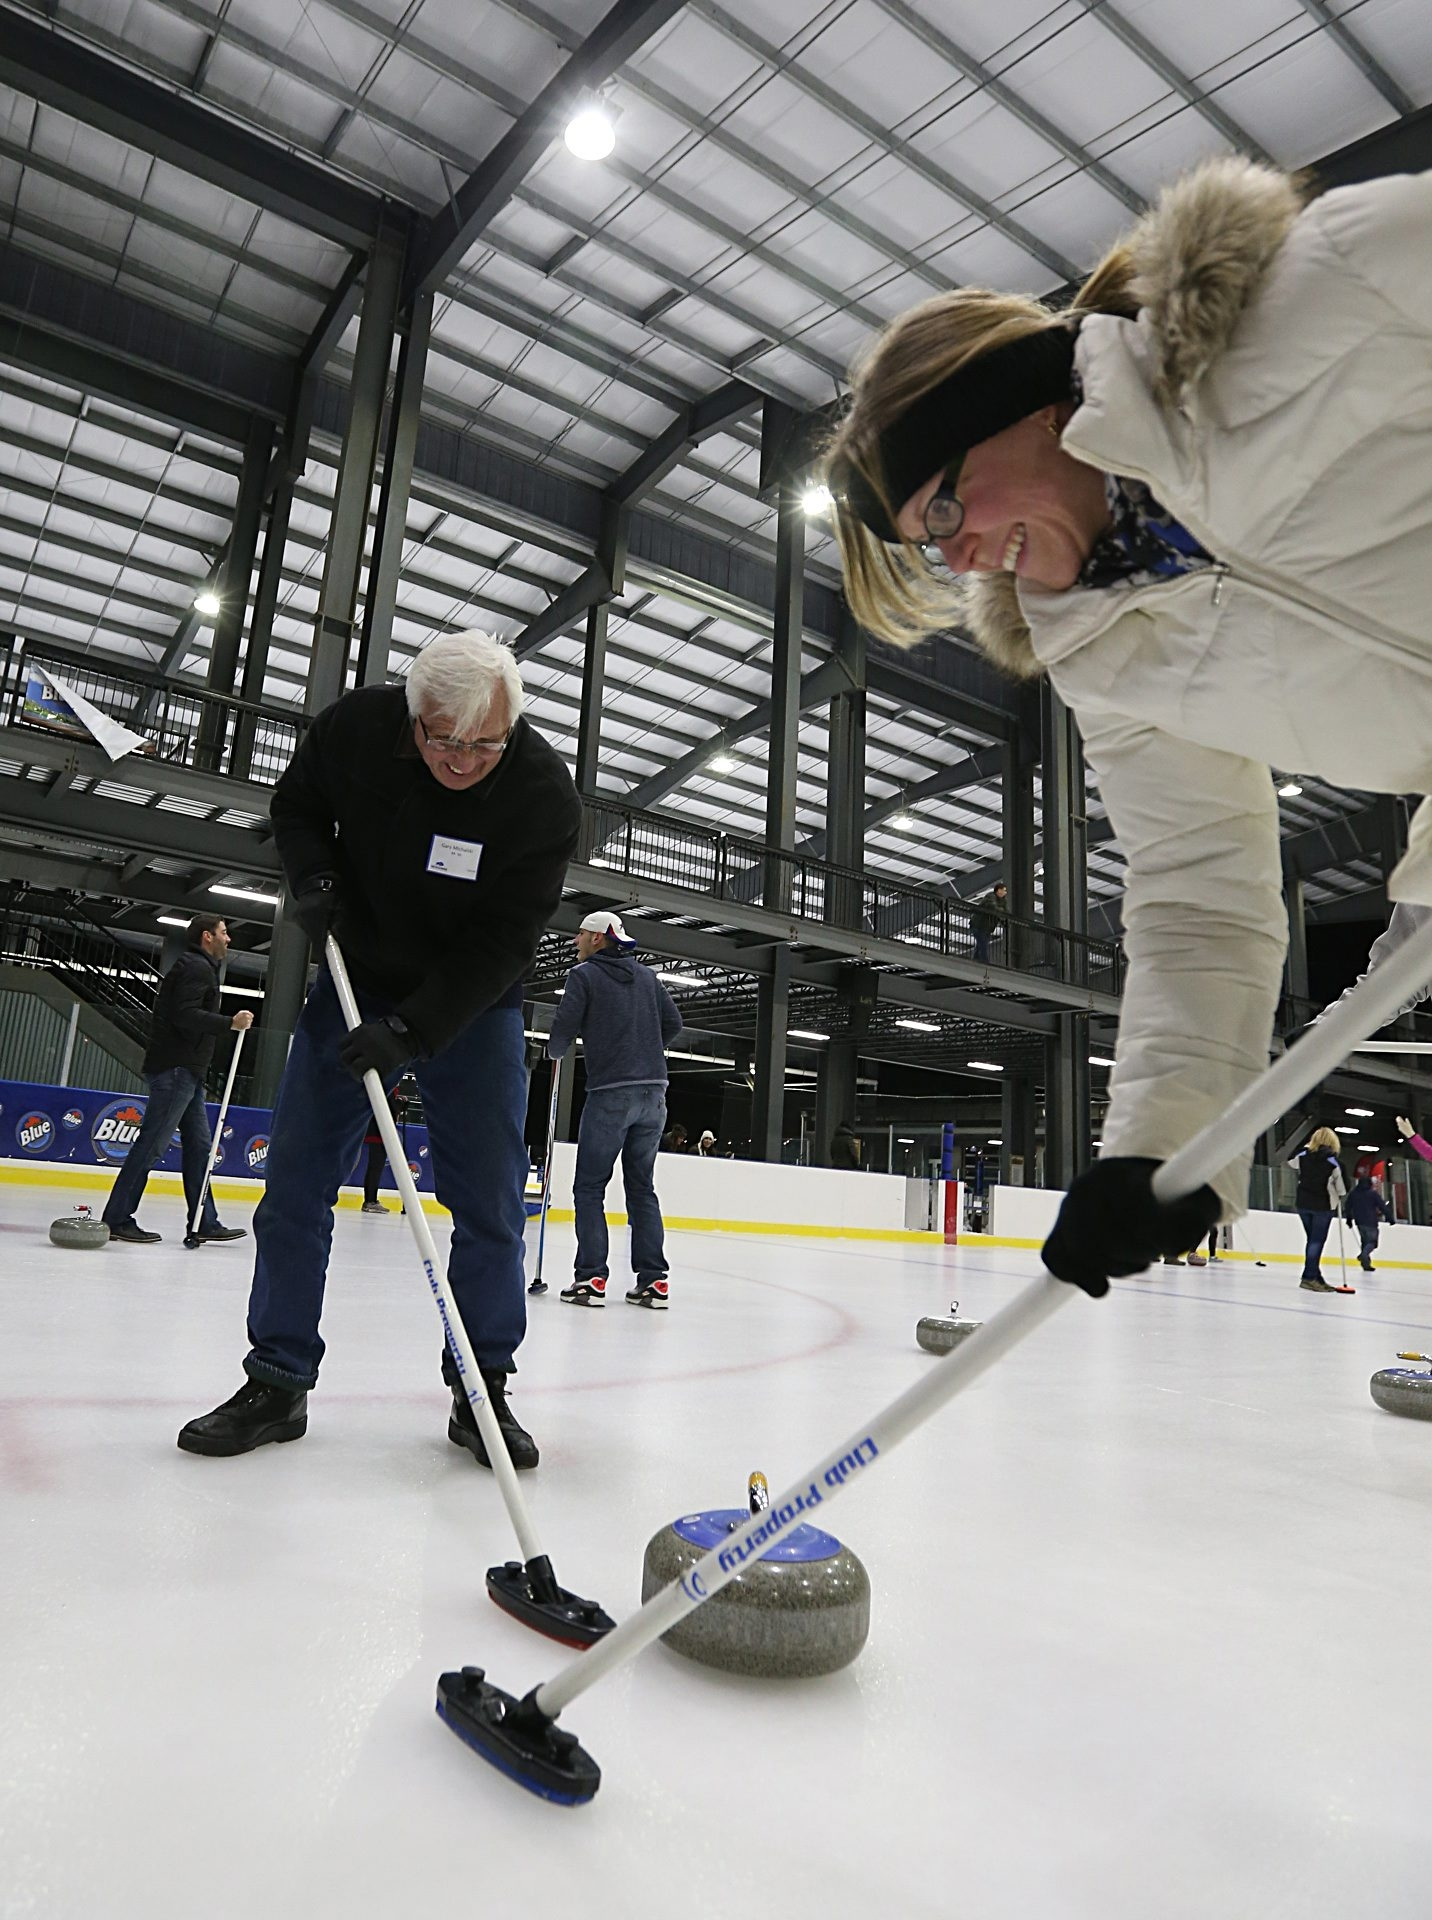 Gary Michalski and his daughter-in-law Amy Michalski participate in a learn-to-curl event offered by the Buffalo Curling Club earlier this month at RiverWorks.